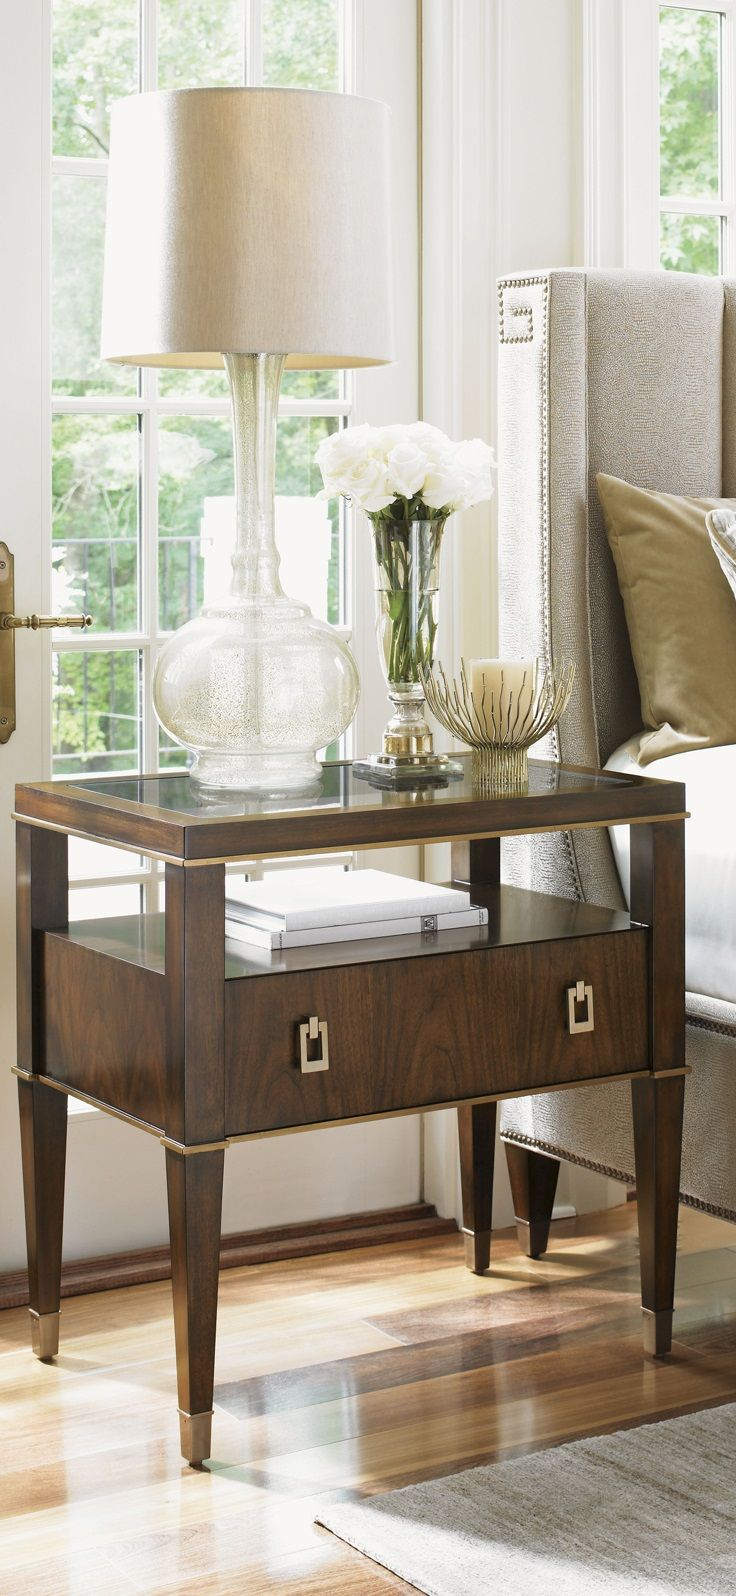 Modern bedside table ideas - Contemporary Wooden Nightstand With All The Space You Need To Keeo Your Things Close To You